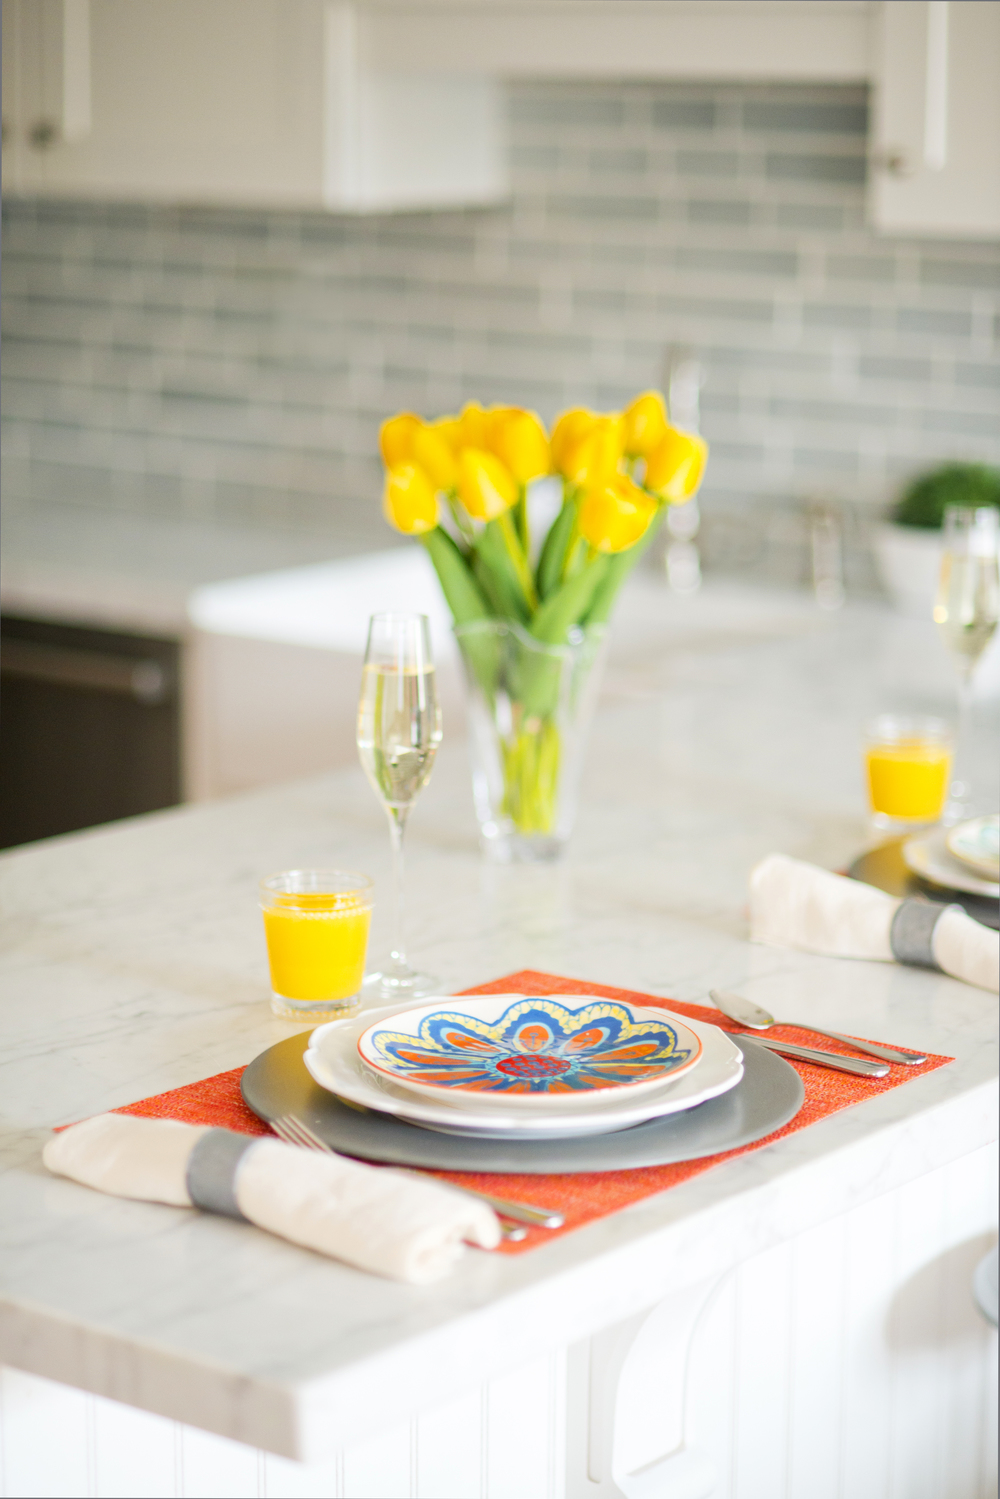 Sun-Kissed Spring Breakfast~ A delightful breakfast spread provided by Crate & Barrel! These pops of Spring color will brighten up any kitchen for the season!